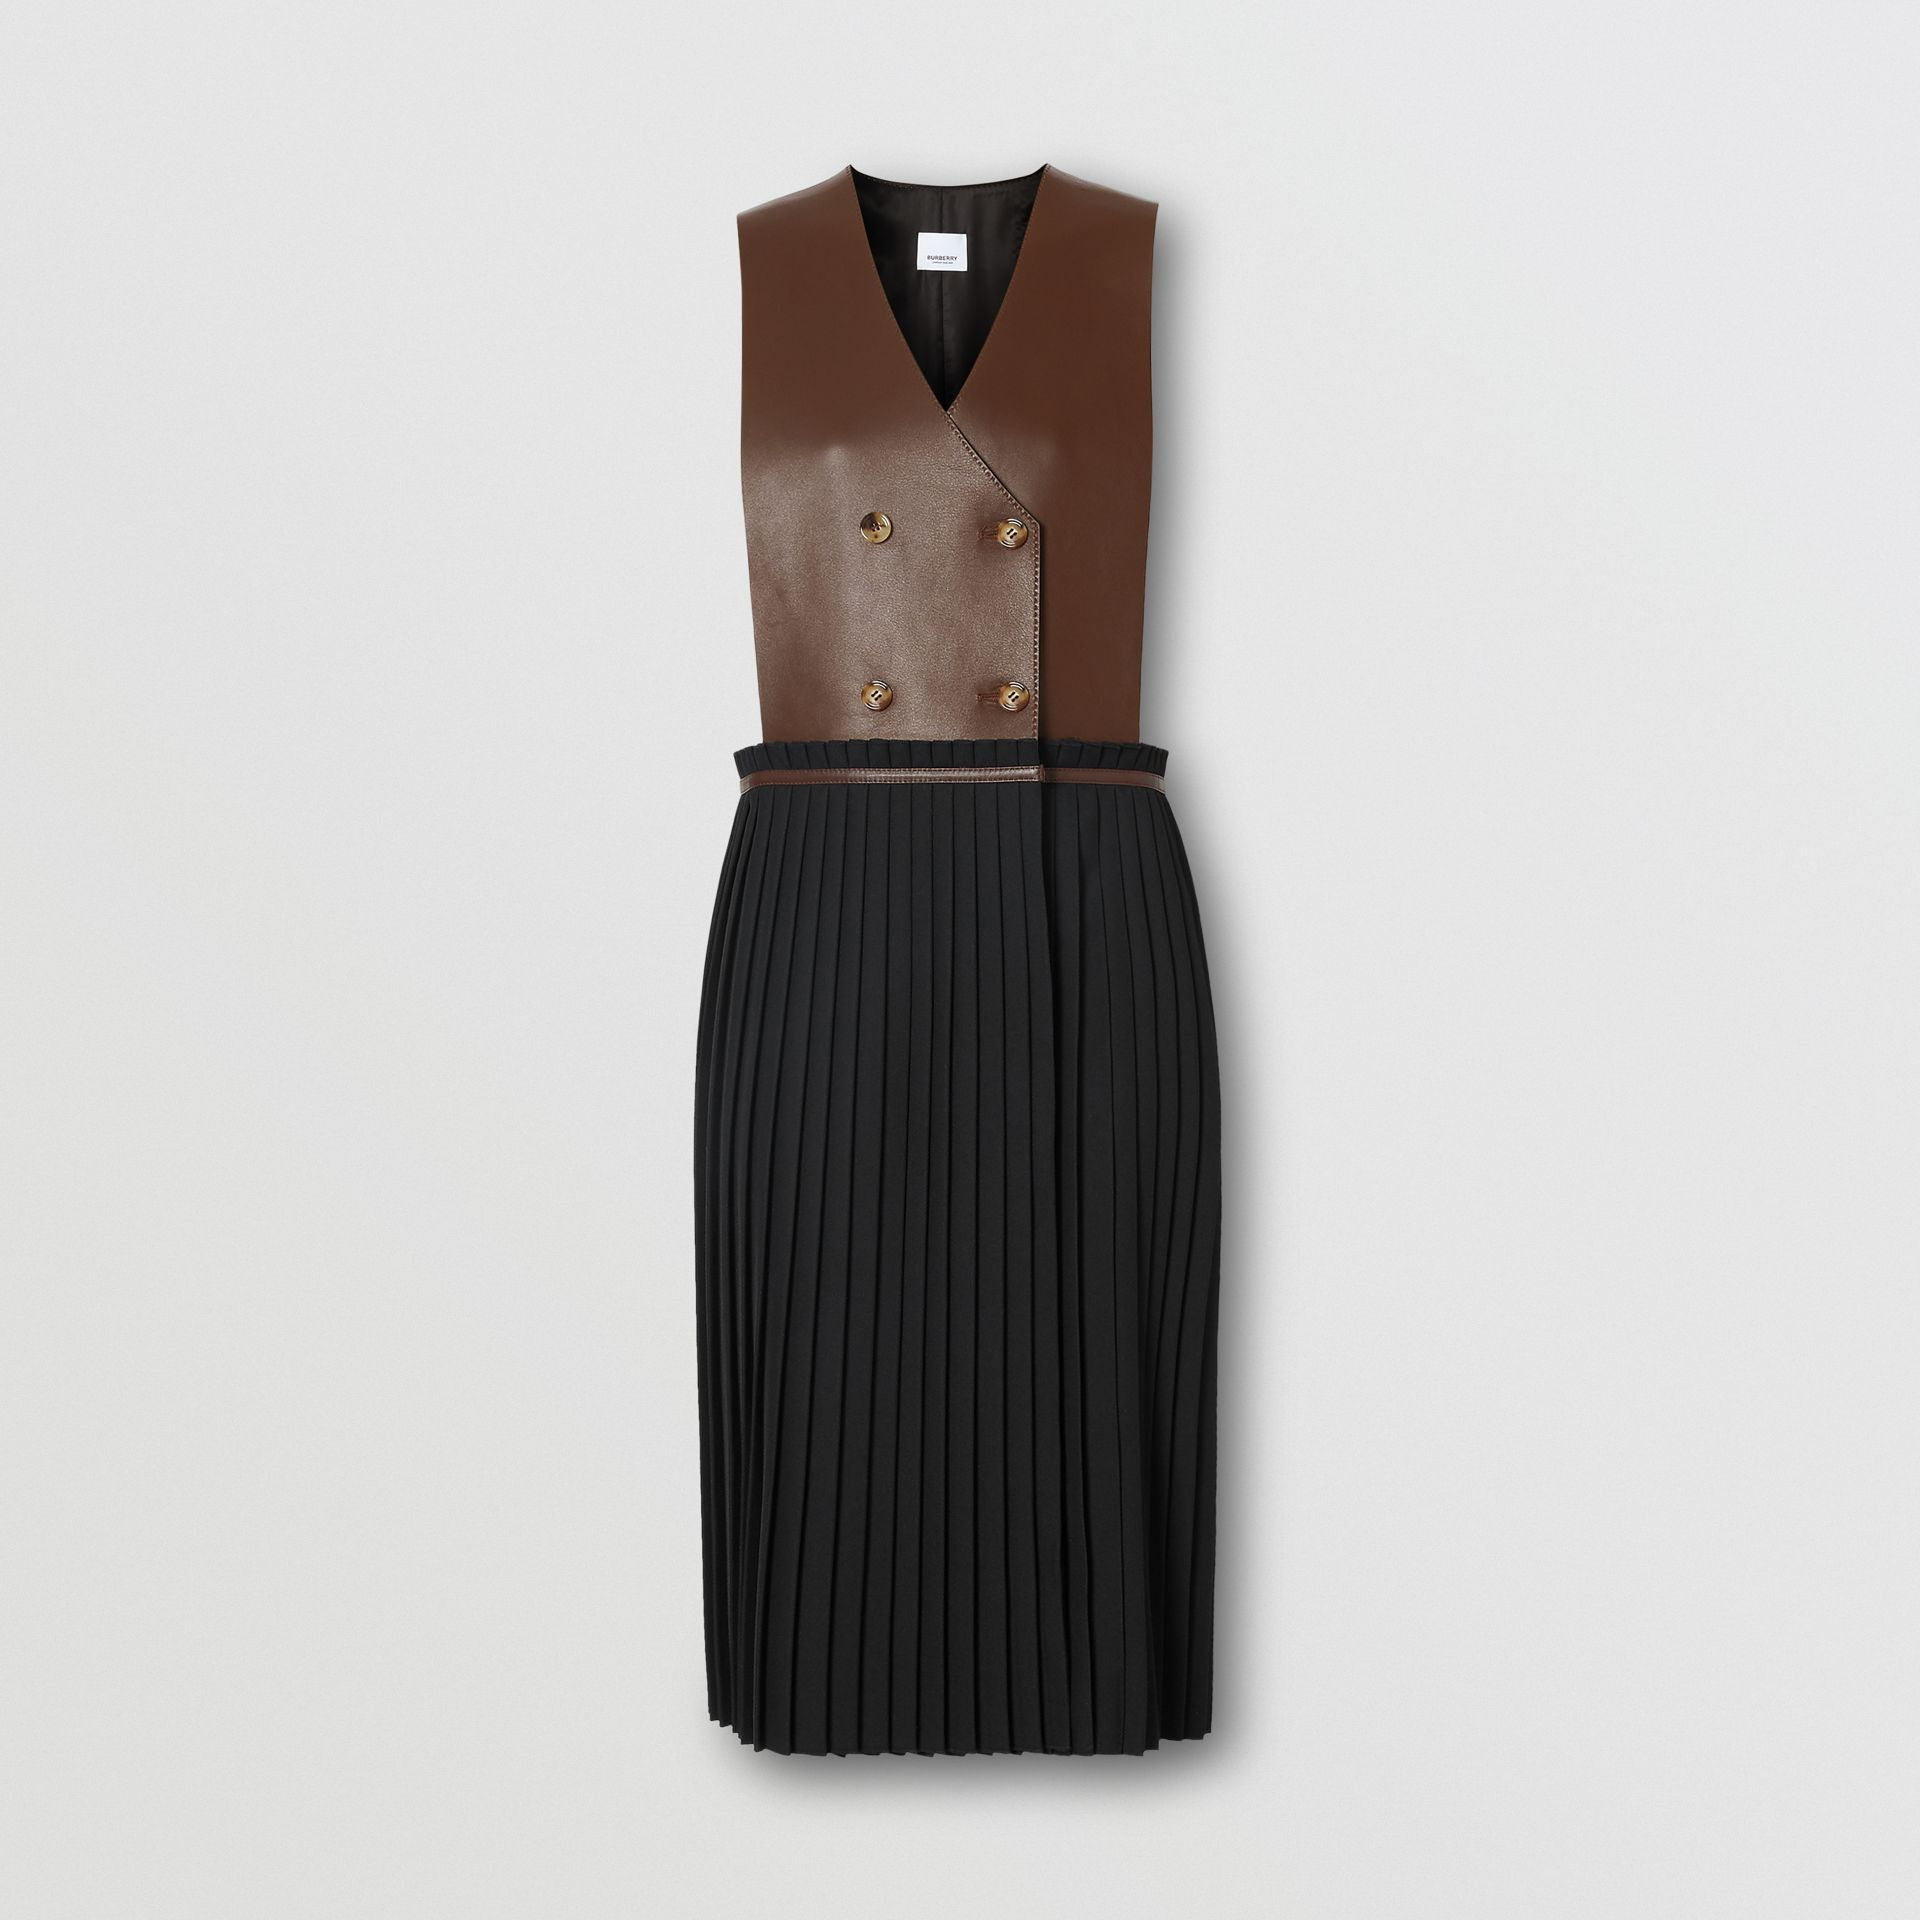 Plonge Lambskin and Wool Blend Pinafore Dress in Dark Mocha - Women | Burberry Hong Kong S.A.R - gallery image 3